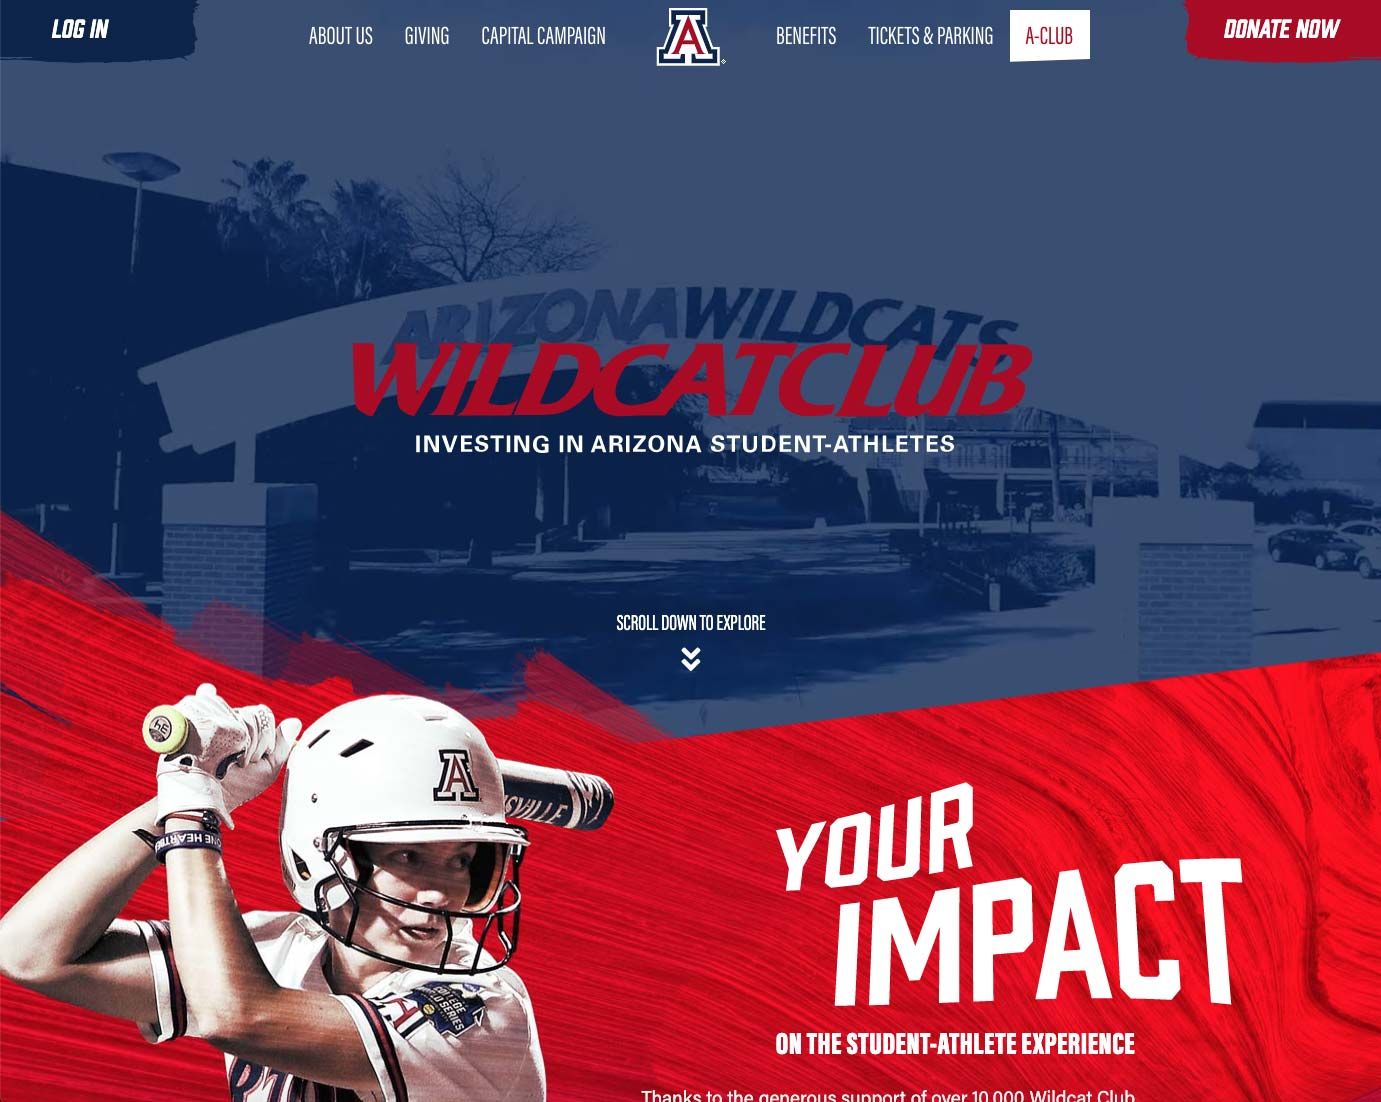 Wildcat Club Fundraising Website | <a href='https://wildcatclub.org/' target='_blank'>Visit Site <i class='nc-icon-glyph arrows-1_share-91'></i></a><br><span>University of Arizona</span>